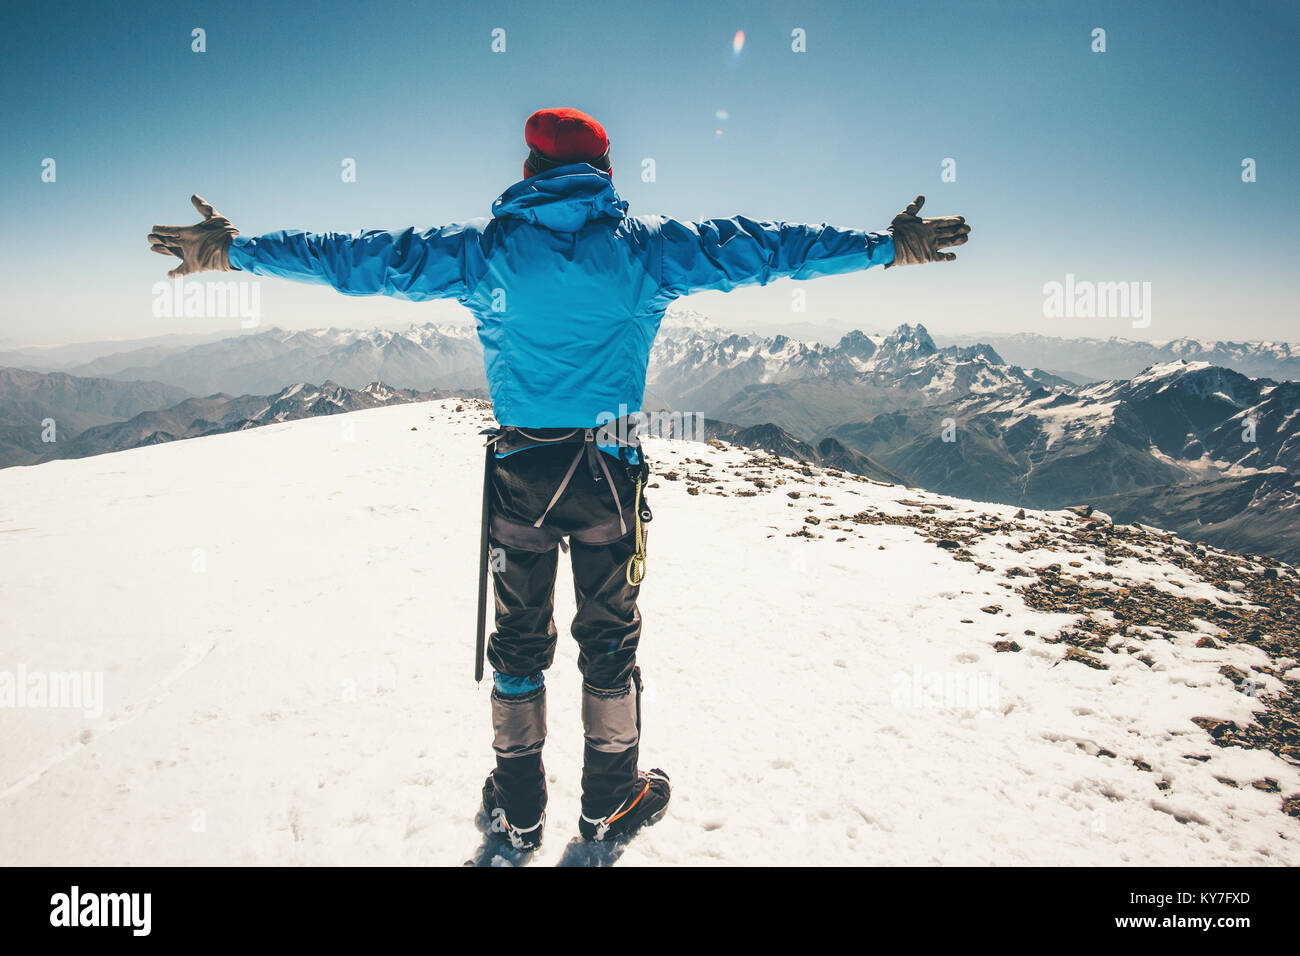 Climber Man on Elbrus mountain east summit Travel Lifestyle success concept adventure active vacations outdoor mountaineering - Stock Image